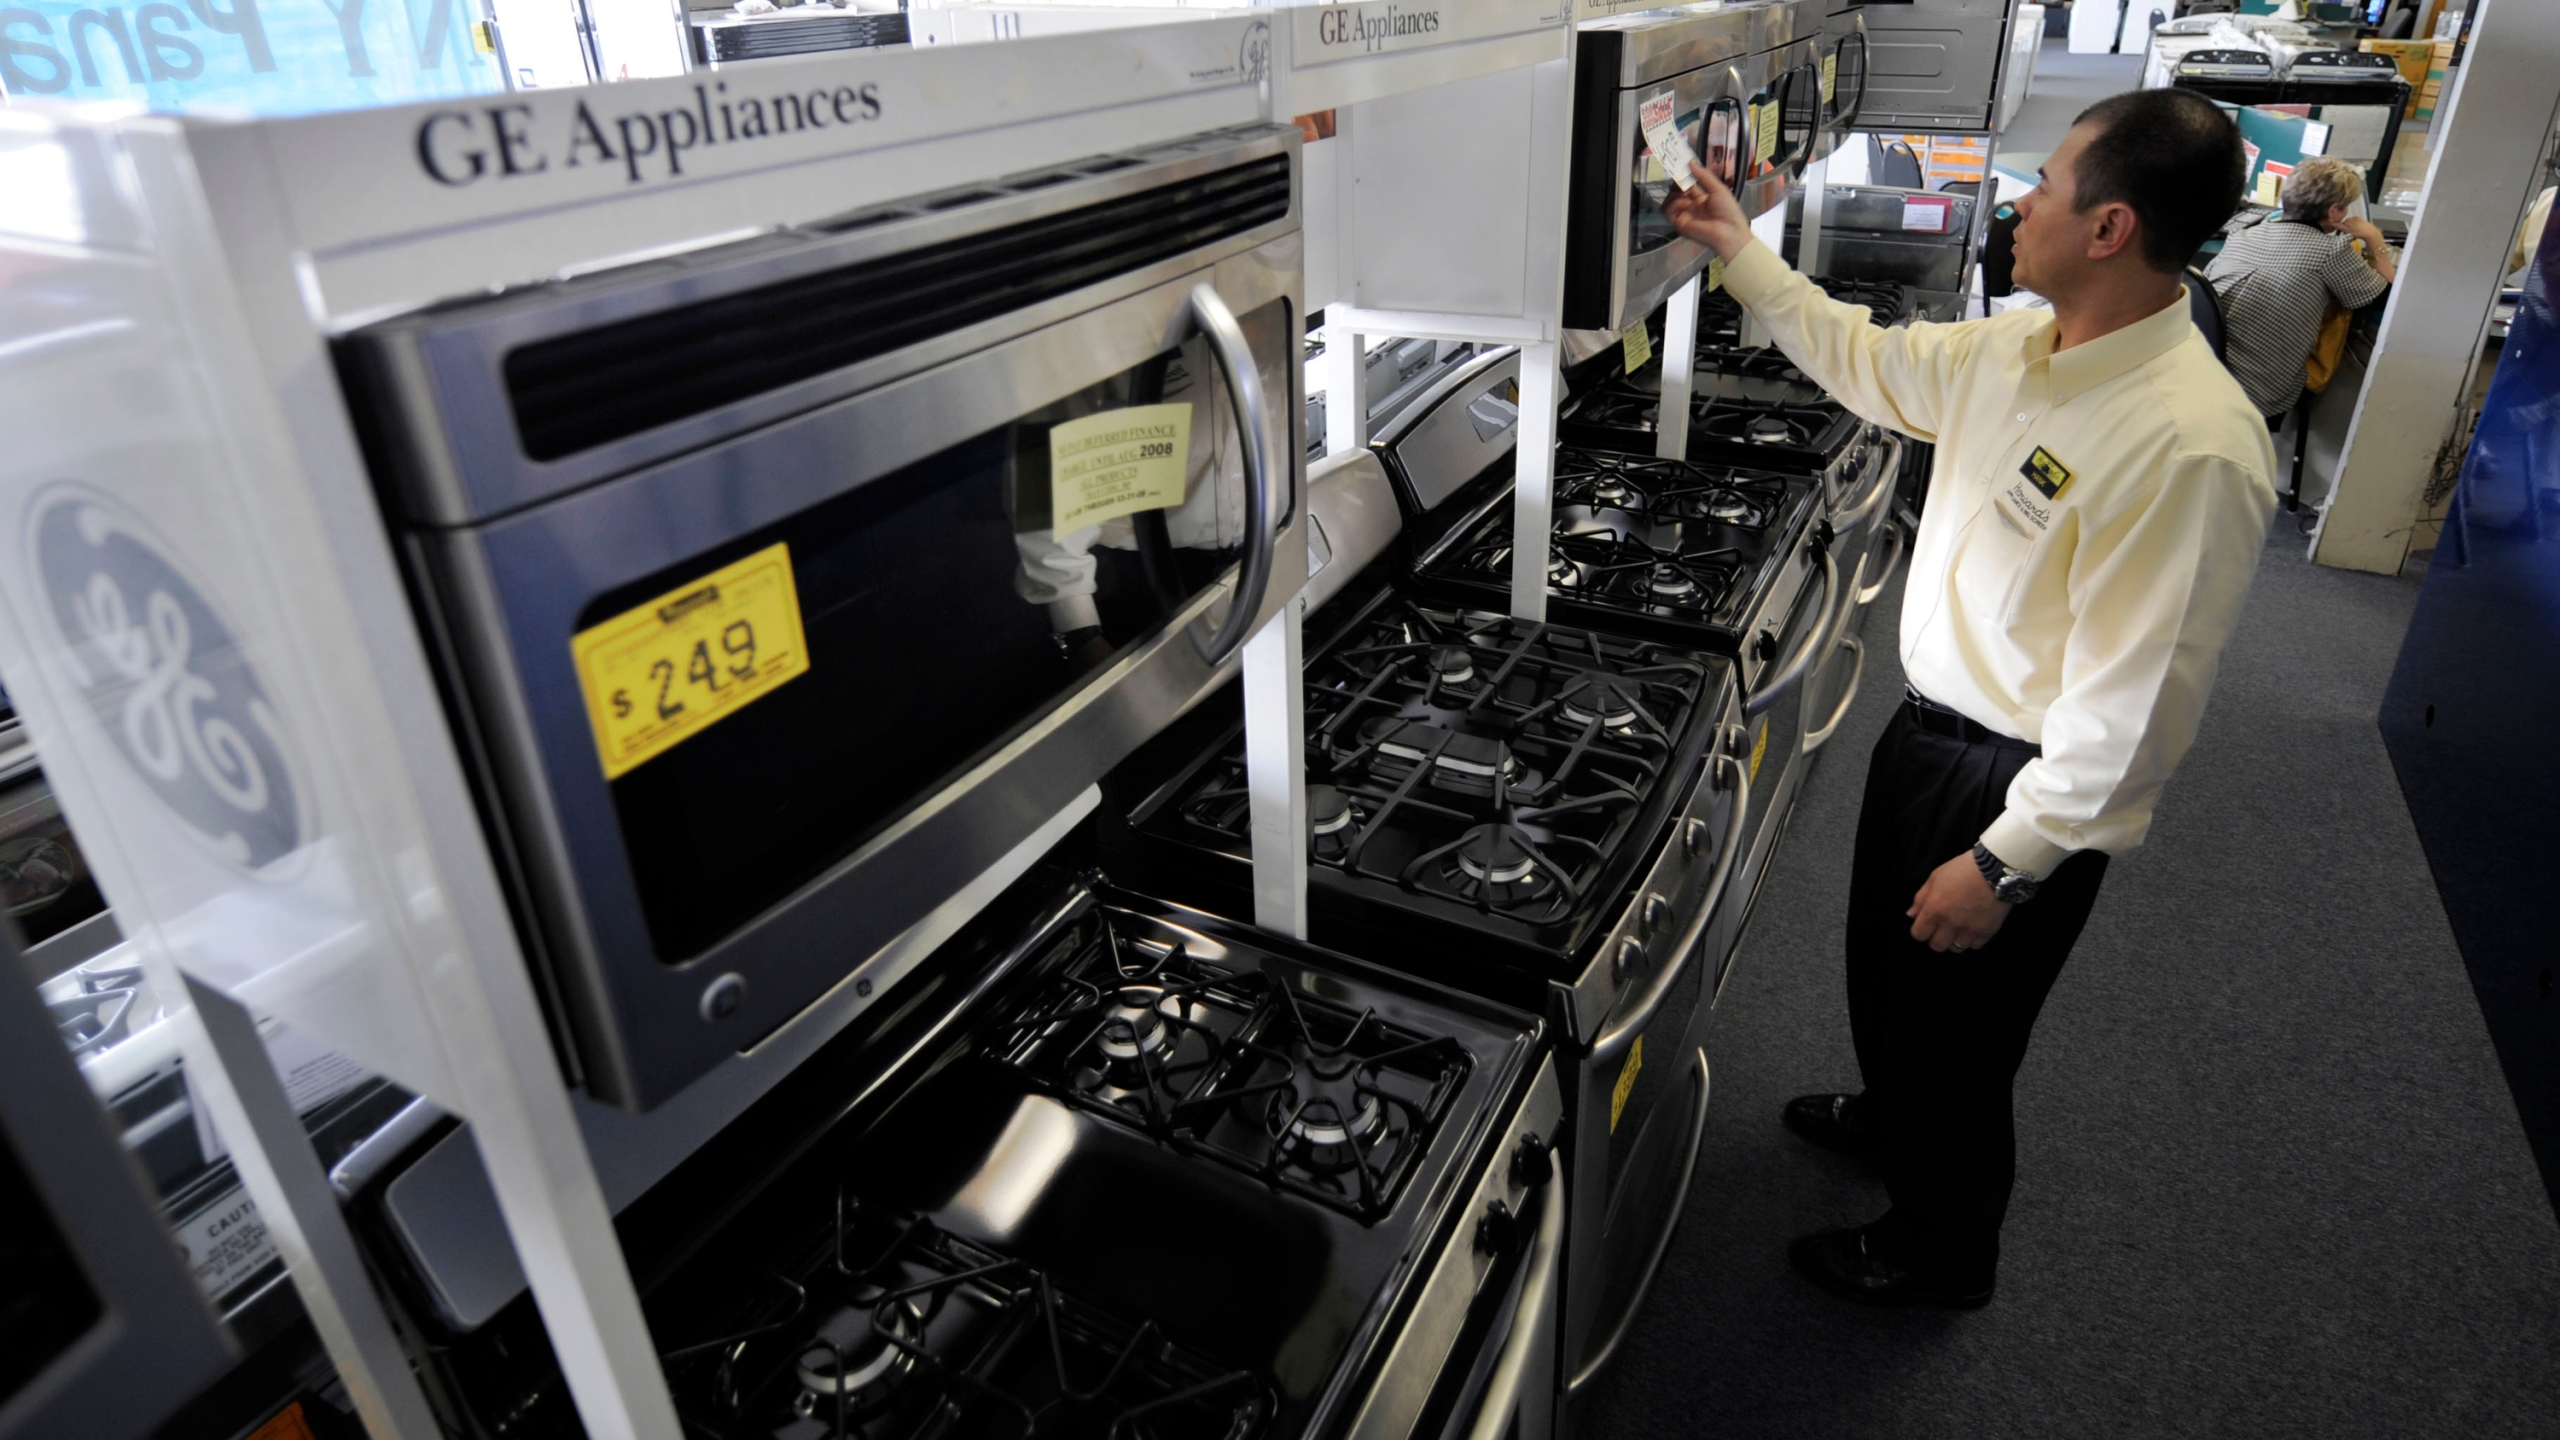 In this April 8, 2008, file photo, salesman Hank Pham puts the price on a General Electric microwave oven in the appliances section of Howard's Appliance and Big-Screen Superstore in San Gabriel, Calif. The California Energy Commission released a draft building standards code Thursday, May 6, 2021, that would require new homes to be equipped with circuits and panels that support all-electric appliances for heating, cooking and drying clothes. While the code doesn't explicitly forbid gas, the commission hopes it will lead builders to construct all-electric structures as part of a growing effort to eliminate fossil fuels from buildings, which account for about one-quarter of the state's annual greenhouse gas emissions. (AP Photo/Kevork Djansezian, File)